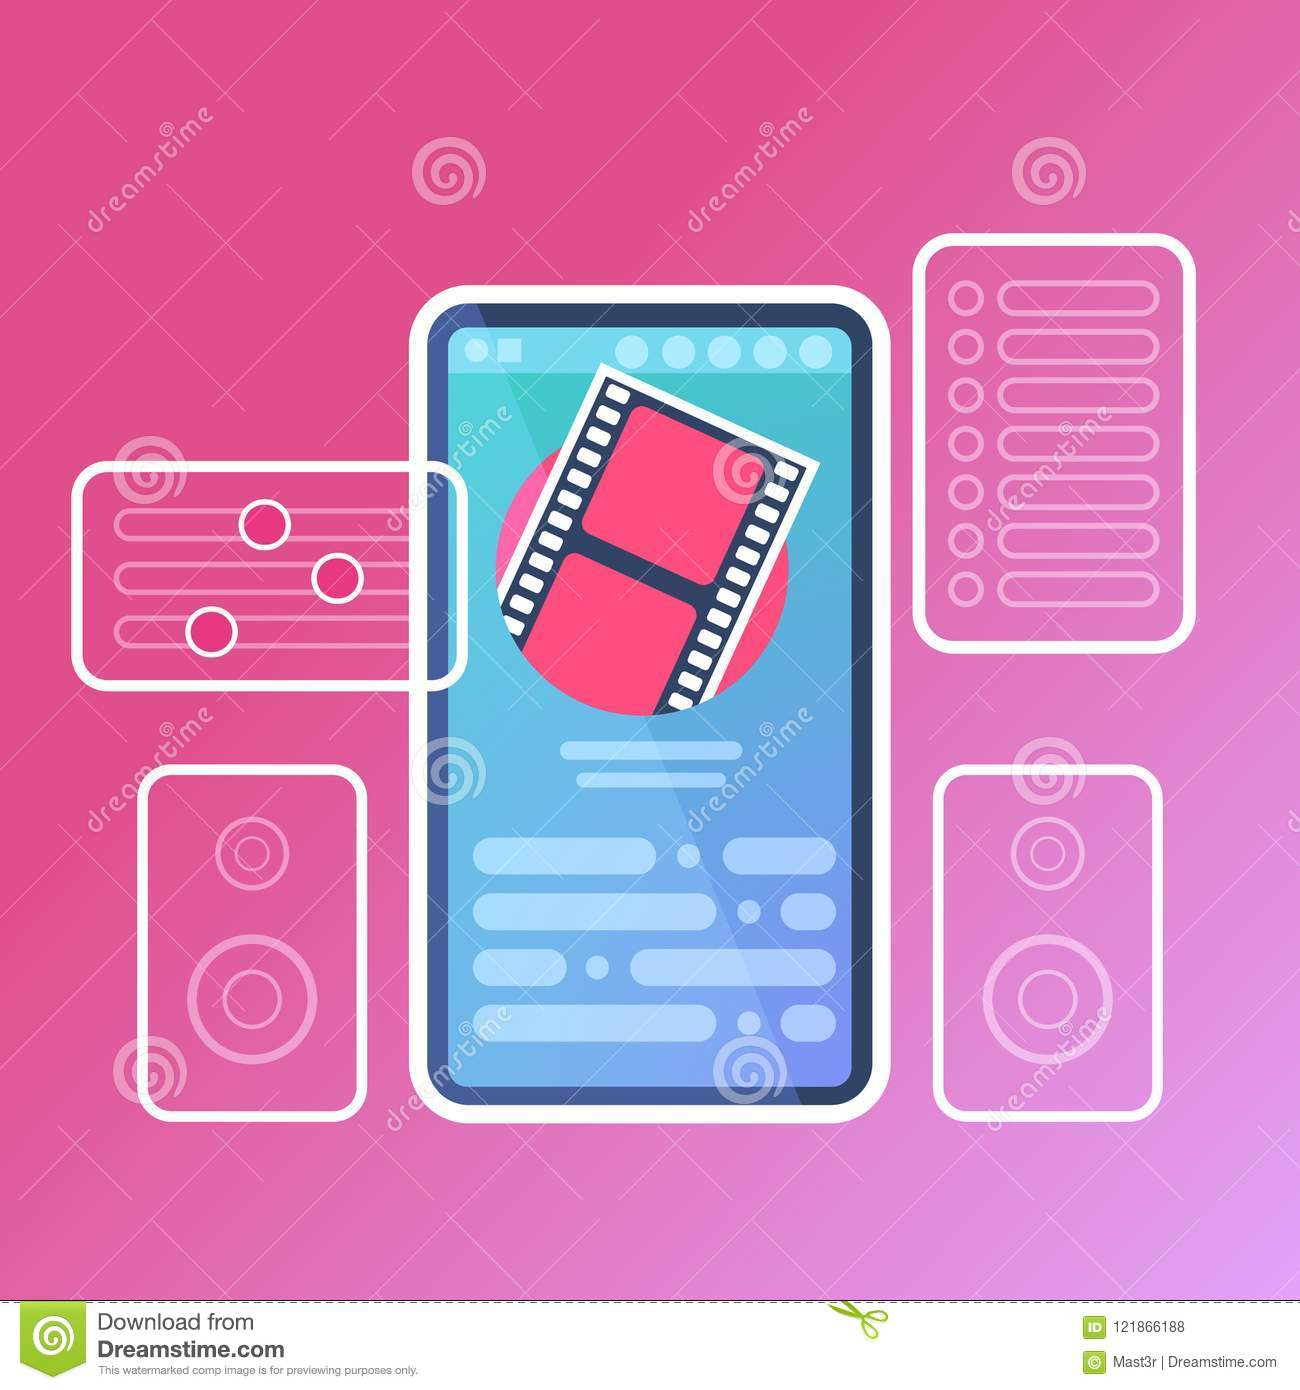 Mobile video player application interface digital media online concept for design work and animation flat